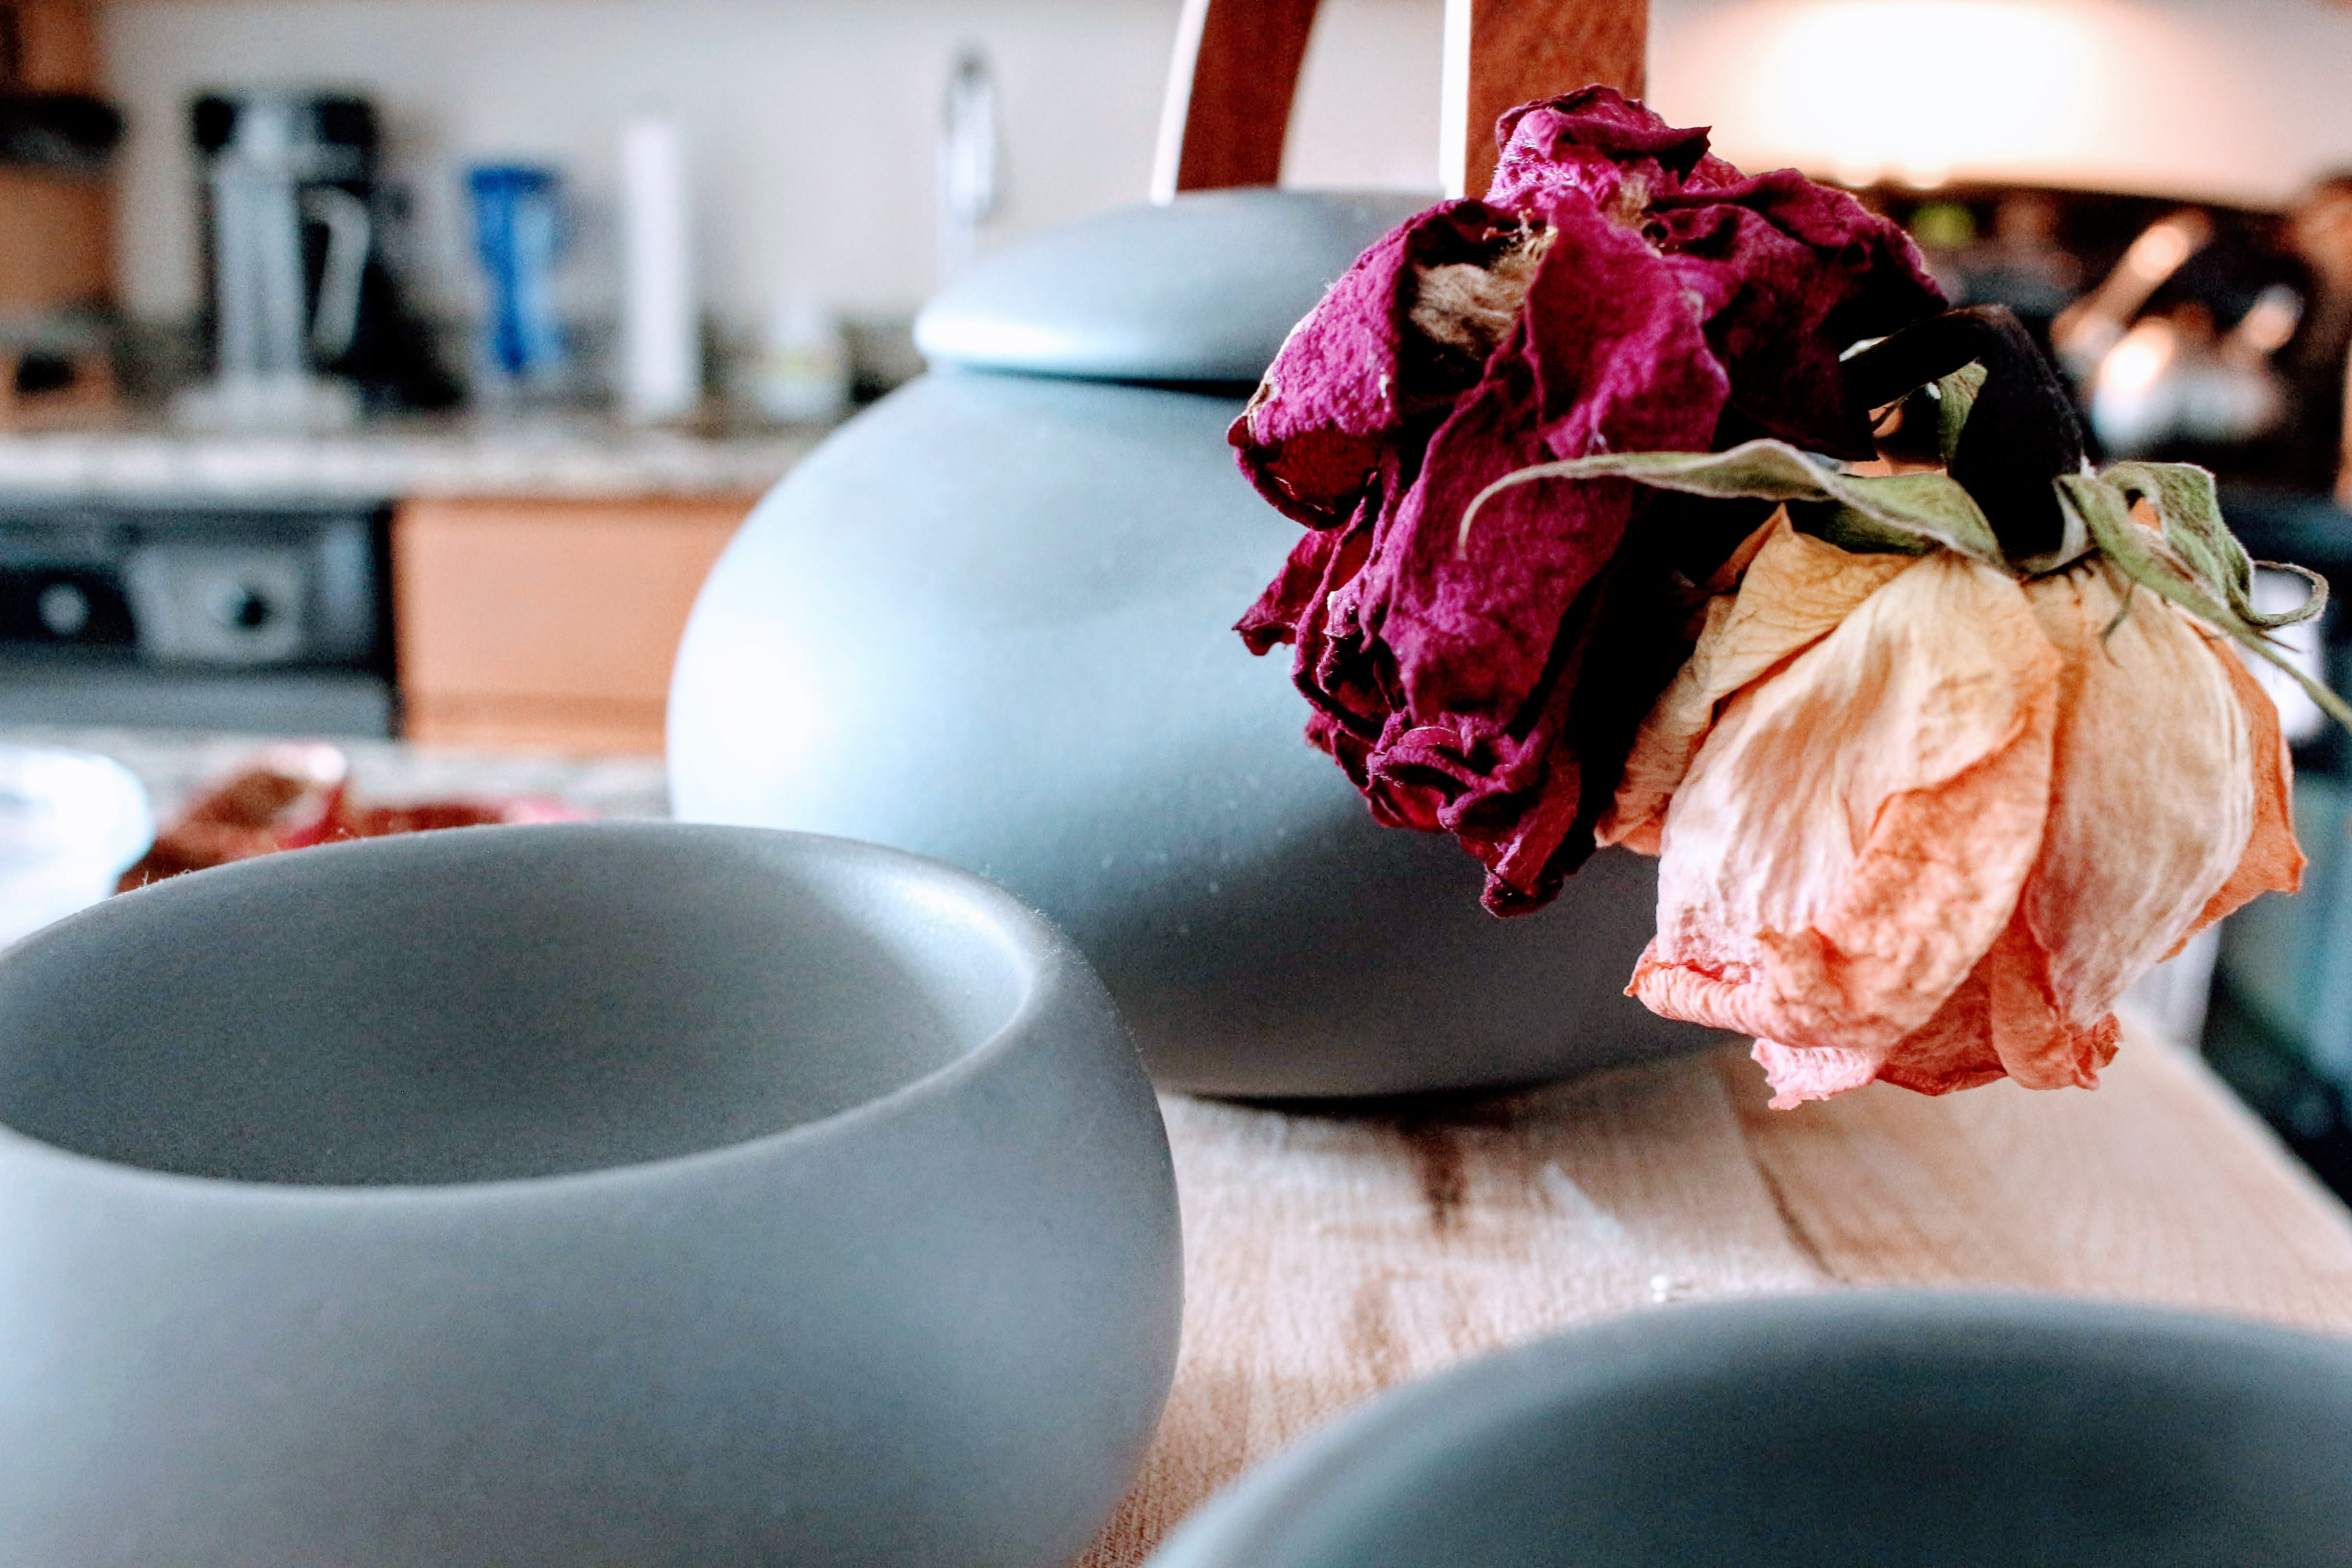 Three Round Teal Ceramic Jars on Brown Wooden Table Near Pink and Purple Petaled Flowers